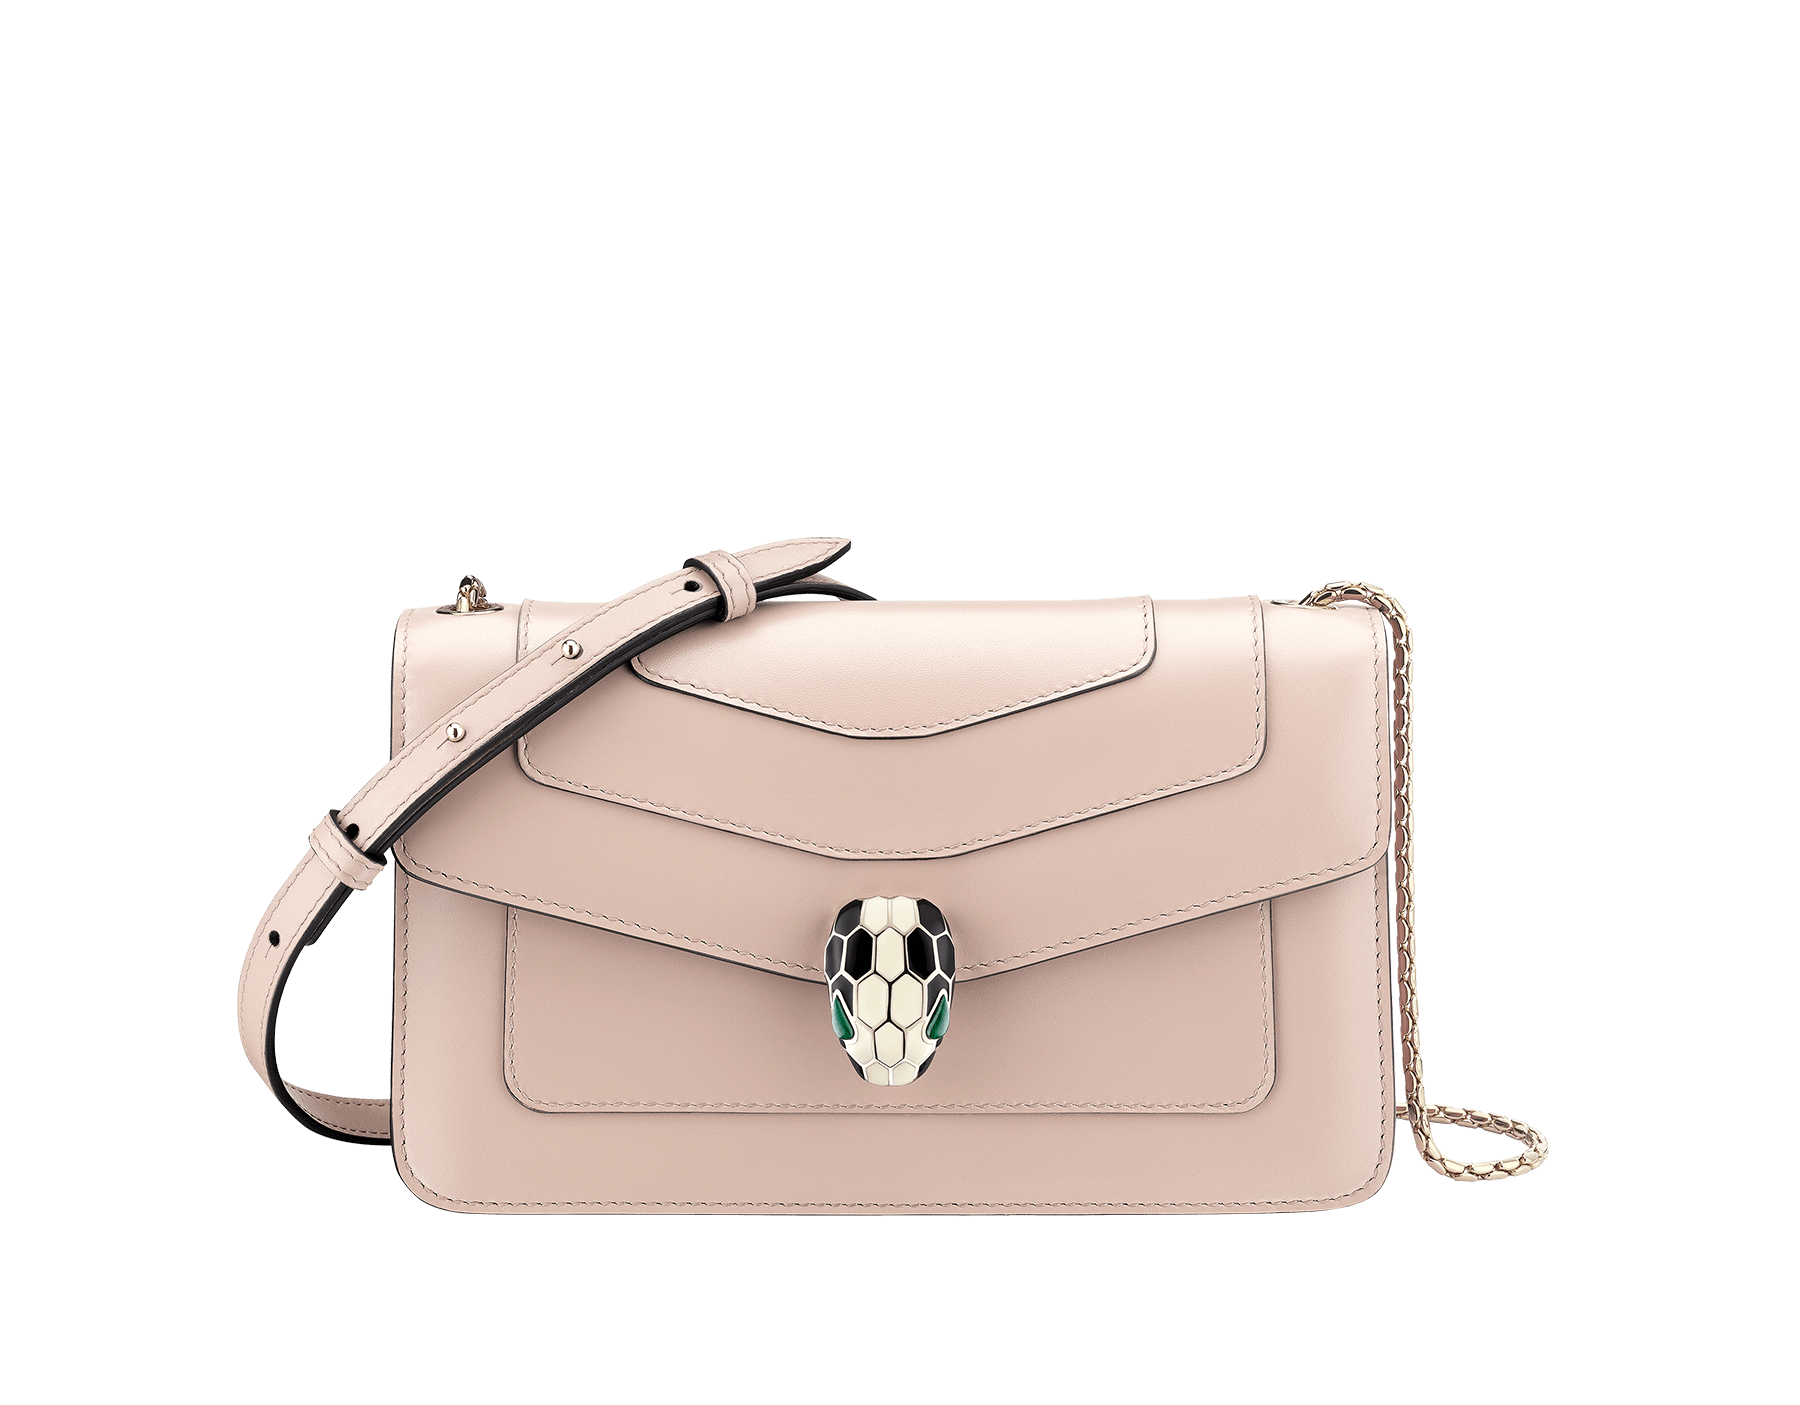 """Serpenti Forever"" crossbody bag in crystal rose calf leather. Iconic snakehead closure in light gold plated brass enriched with black and white enamel and green malachite eyes 625-CLa image 1"